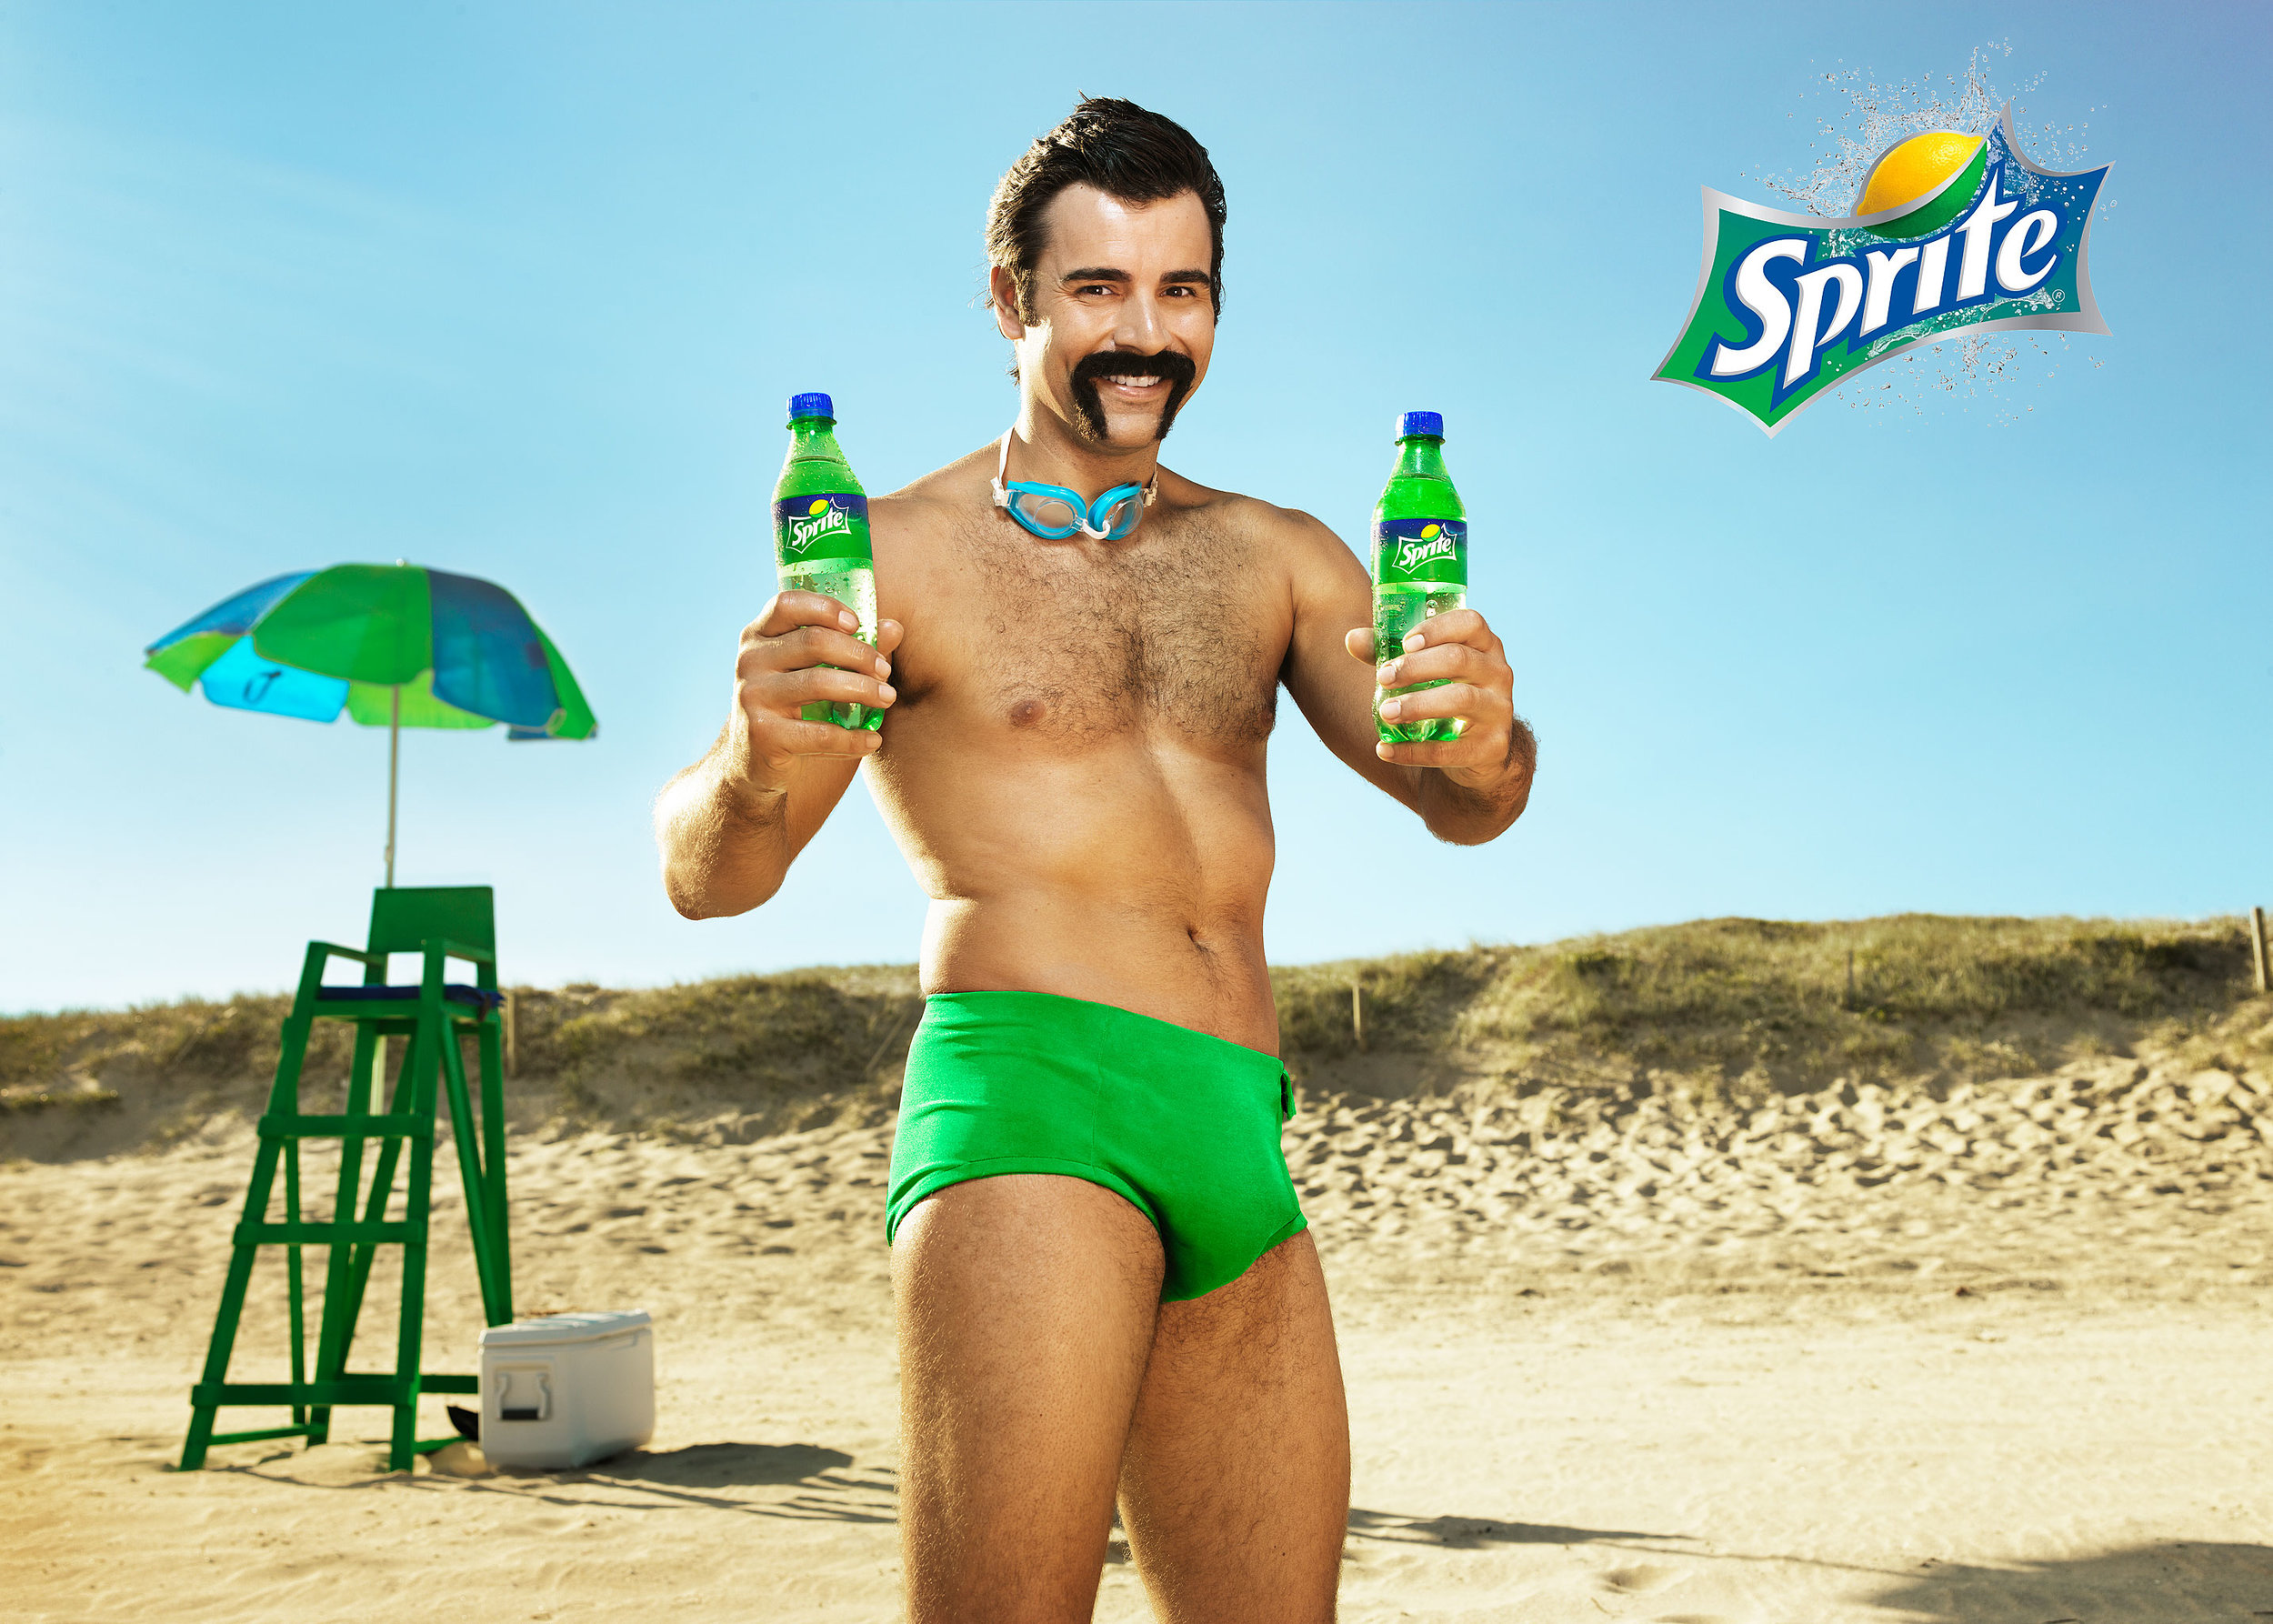 Sprite - Client: Coca Cola companyAgency: McCaanUsage: Web & Social mediaFor the summer Campaign for Sprite the wonderful creatives at McCaan created a hilarious character that goes around saving peoples lives and pulling bottles of Sprite out of his Swimming costume.